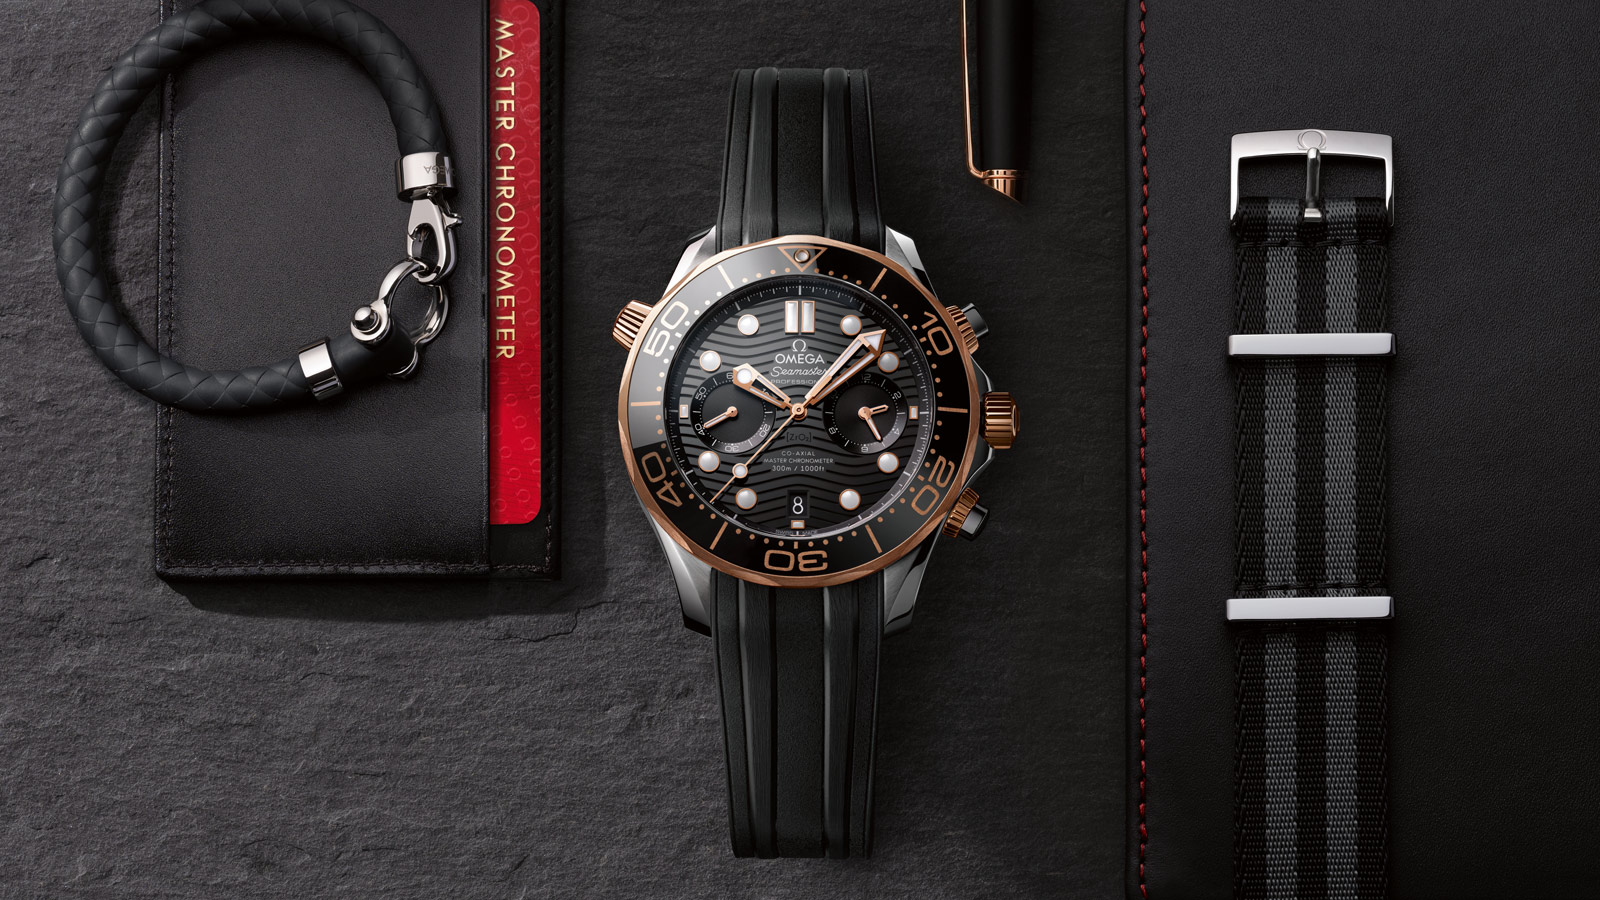 Seamaster Diver 300 M Diver 300M Omega Co‑Axial Master Chronometer Chronograph 44 mm Relógio - 210.22.44.51.01.001